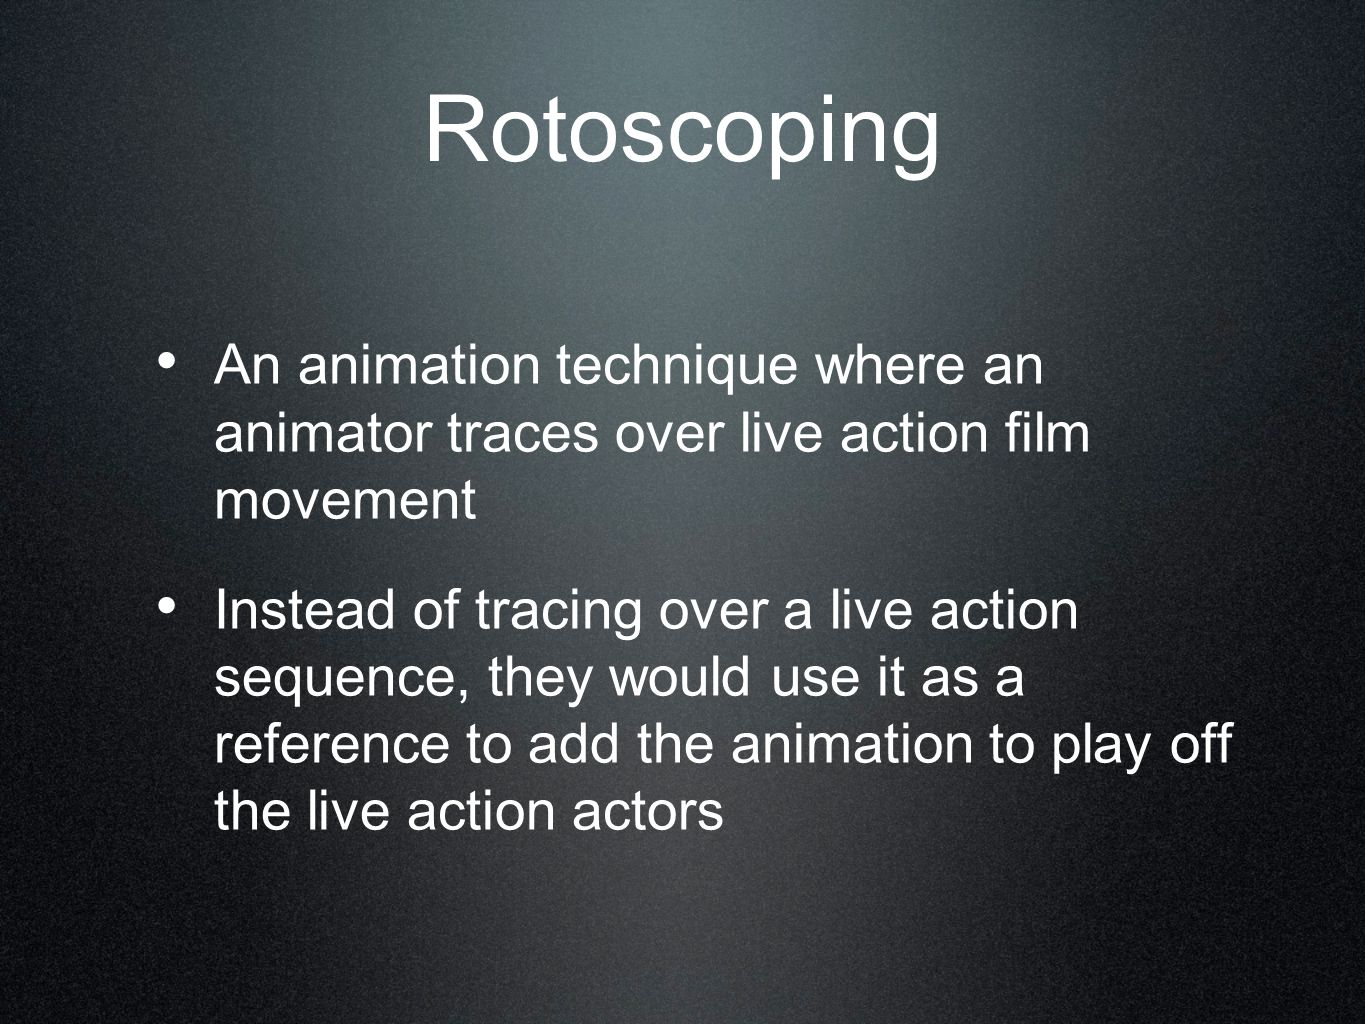 Rotoscoping An animation technique where an animator traces over live action film movement Instead of tracing over a live action sequence, they would use it as a reference to add the animation to play off the live action actors